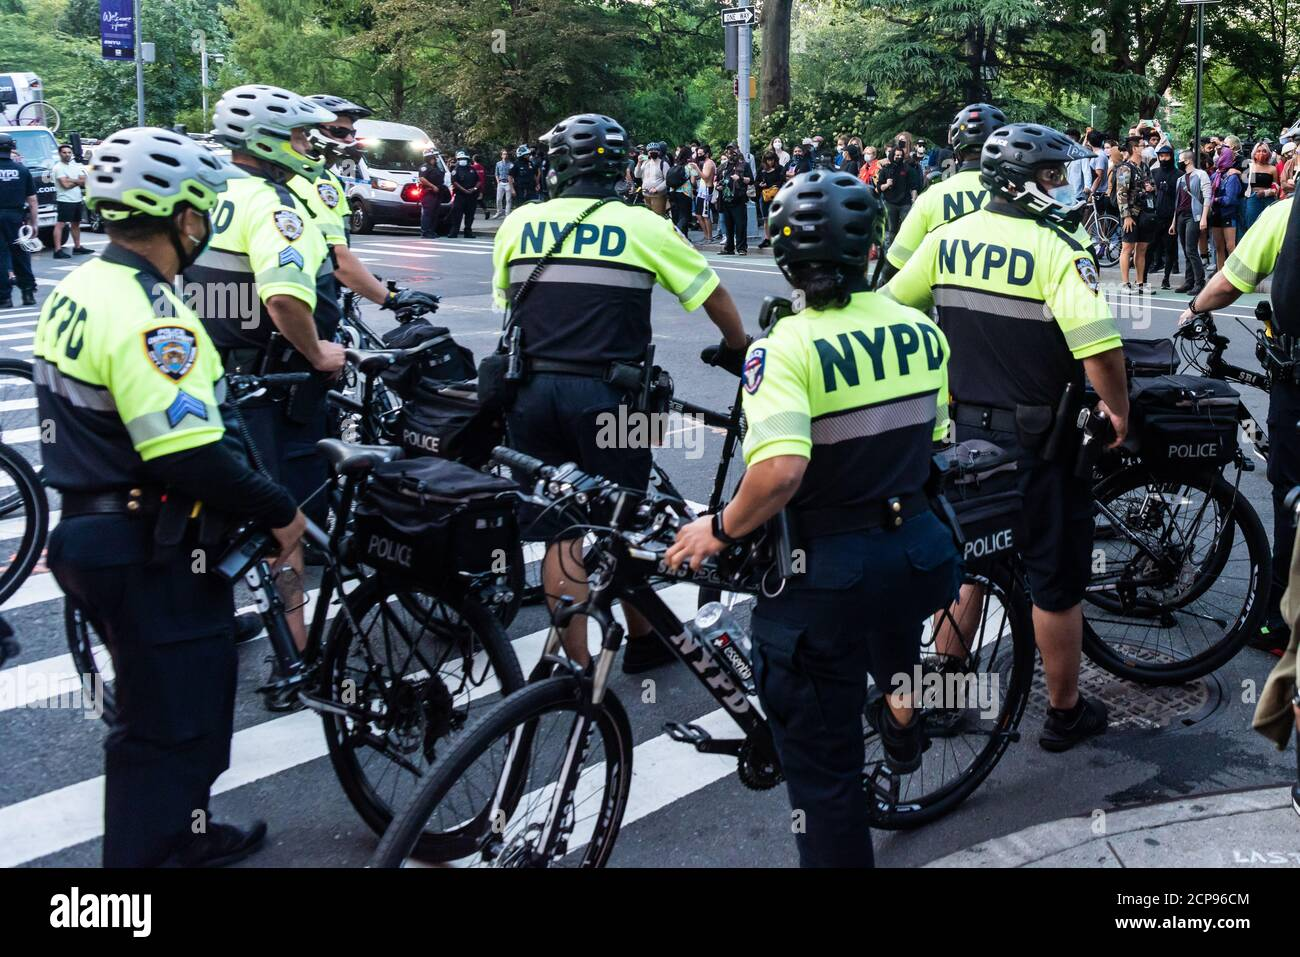 NYPD officers monitor protesters during a demonstration against Immigration and Customs Enforcement in New York City on September 18, 20202. For a third day in a row, protestors demonstrated against alleged accusations that a physician perfomed medically unnecessary hysterectomies on undocumented women in I.C.E. custody. (Photo by Gabriele Holtermann/Sipa USA) Credit: Sipa USA/Alamy Live News Stock Photo